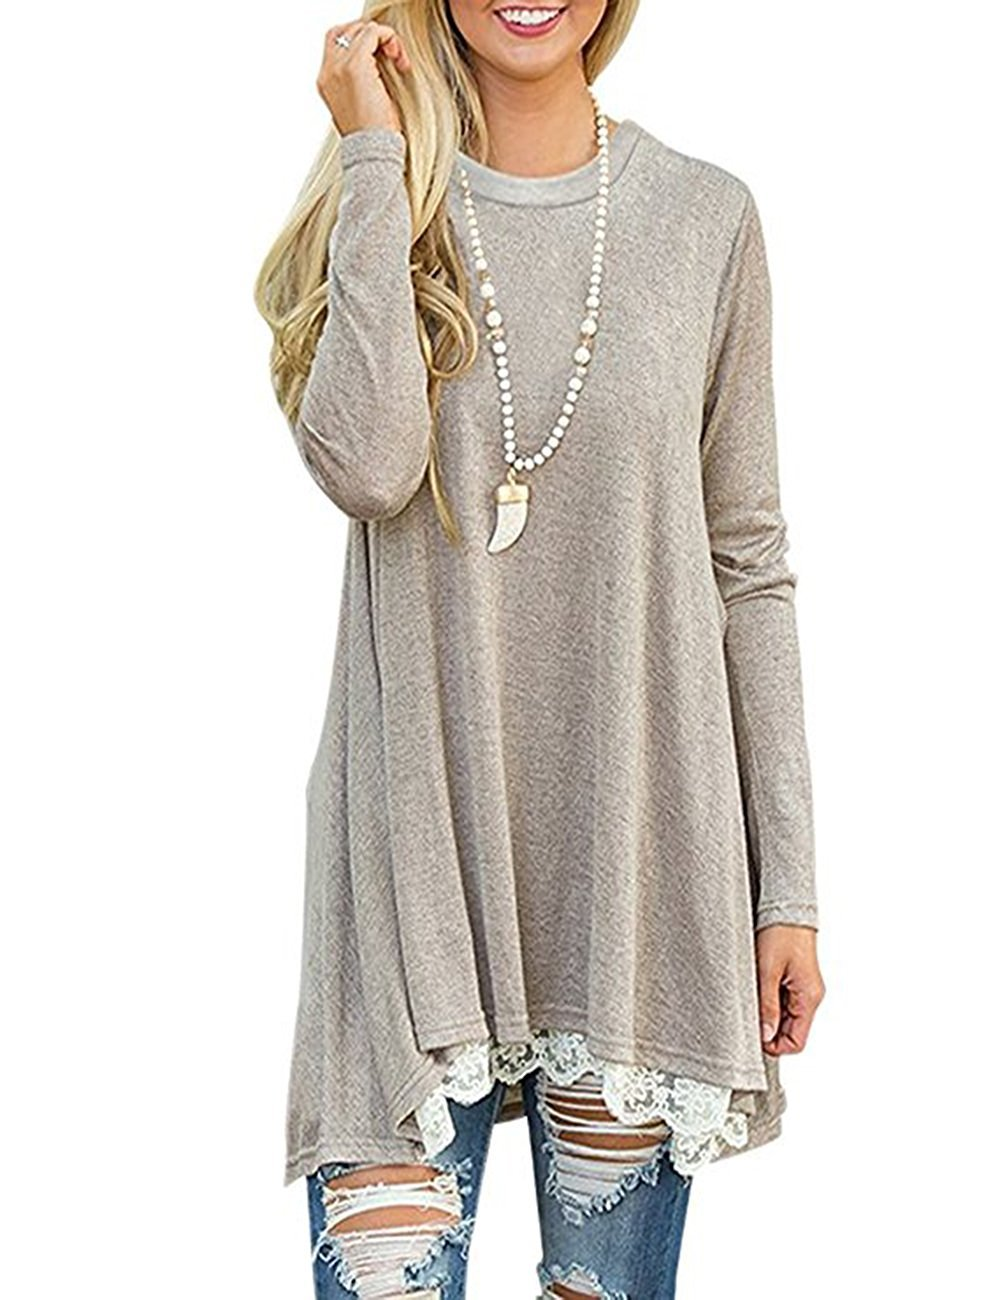 Andaa Women's Crew Neck Long Sleeve Lace Splicing Swing Shirt Dresses Long Tunic Blouses Shirts for Leggings (XL, Khaki) by Andaa